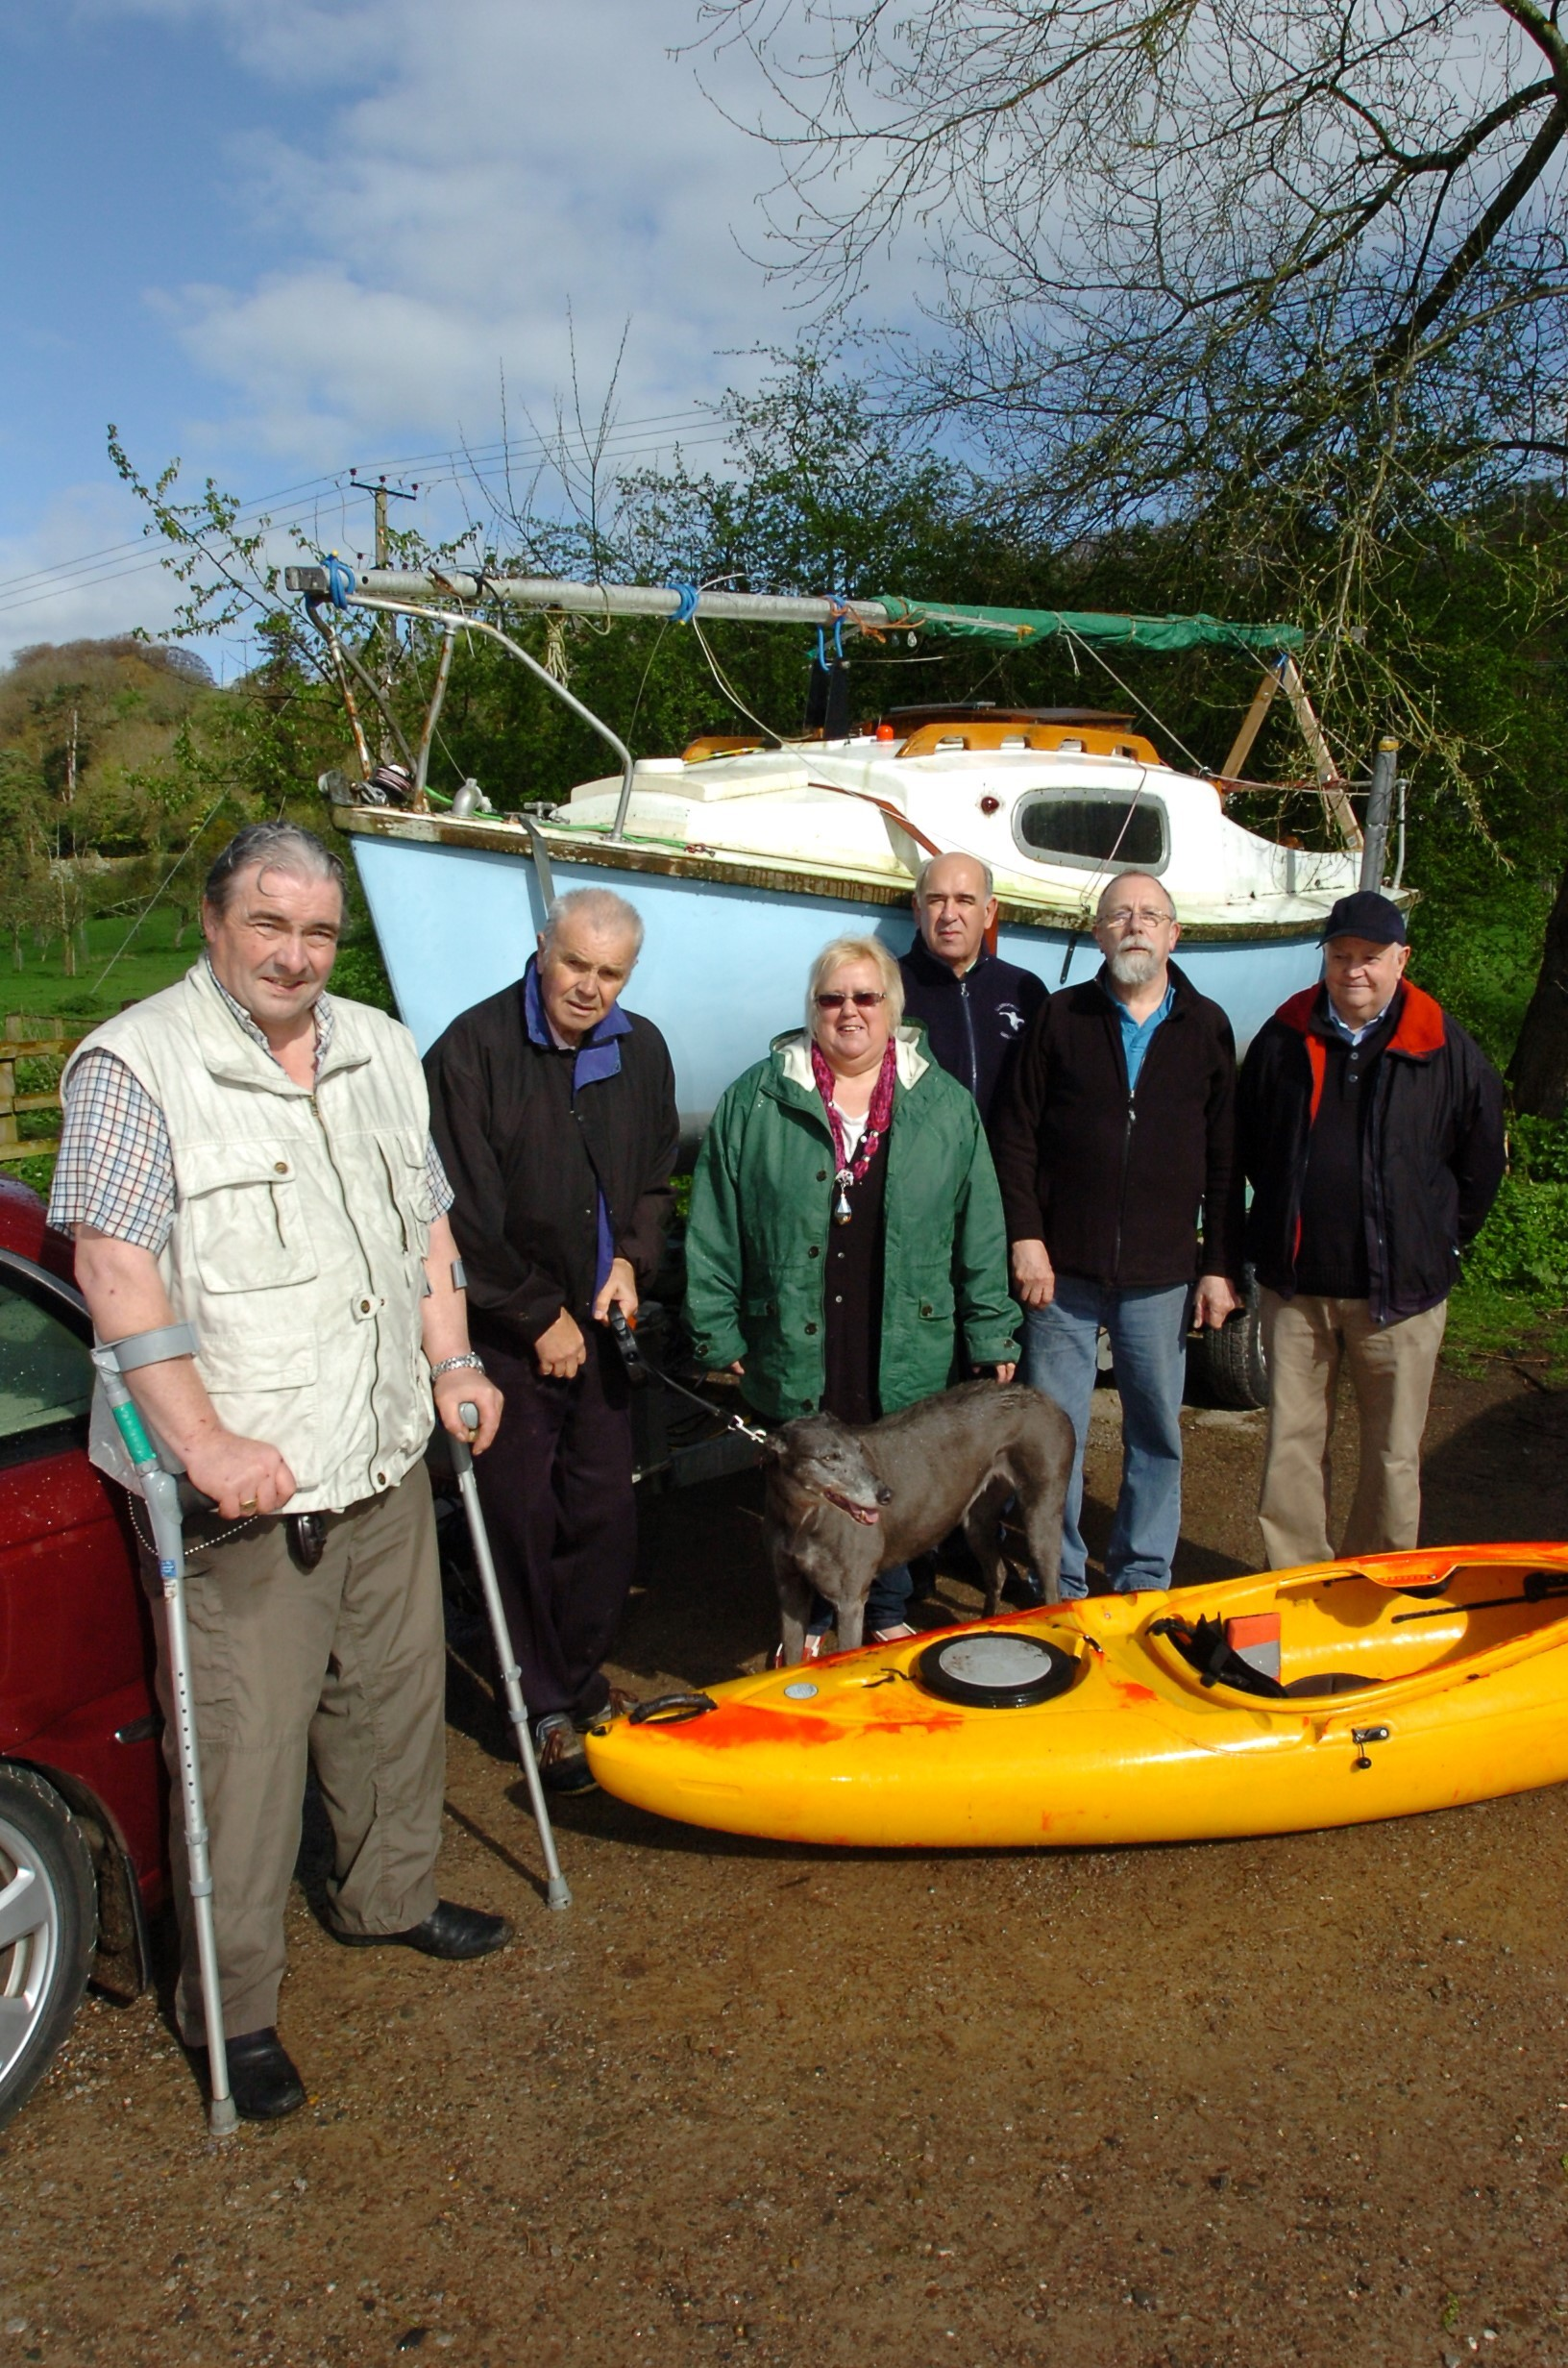 1415_5001 Disabled / Sailing Herefordshire group hope to take over Bodenham Lake after the sailing facility was closed.(l-r), Steve Lloyd, Chris Edge, Elaine Angell, Syd Furnival, Ian Brasnett, Bill Brumbill at the entrance